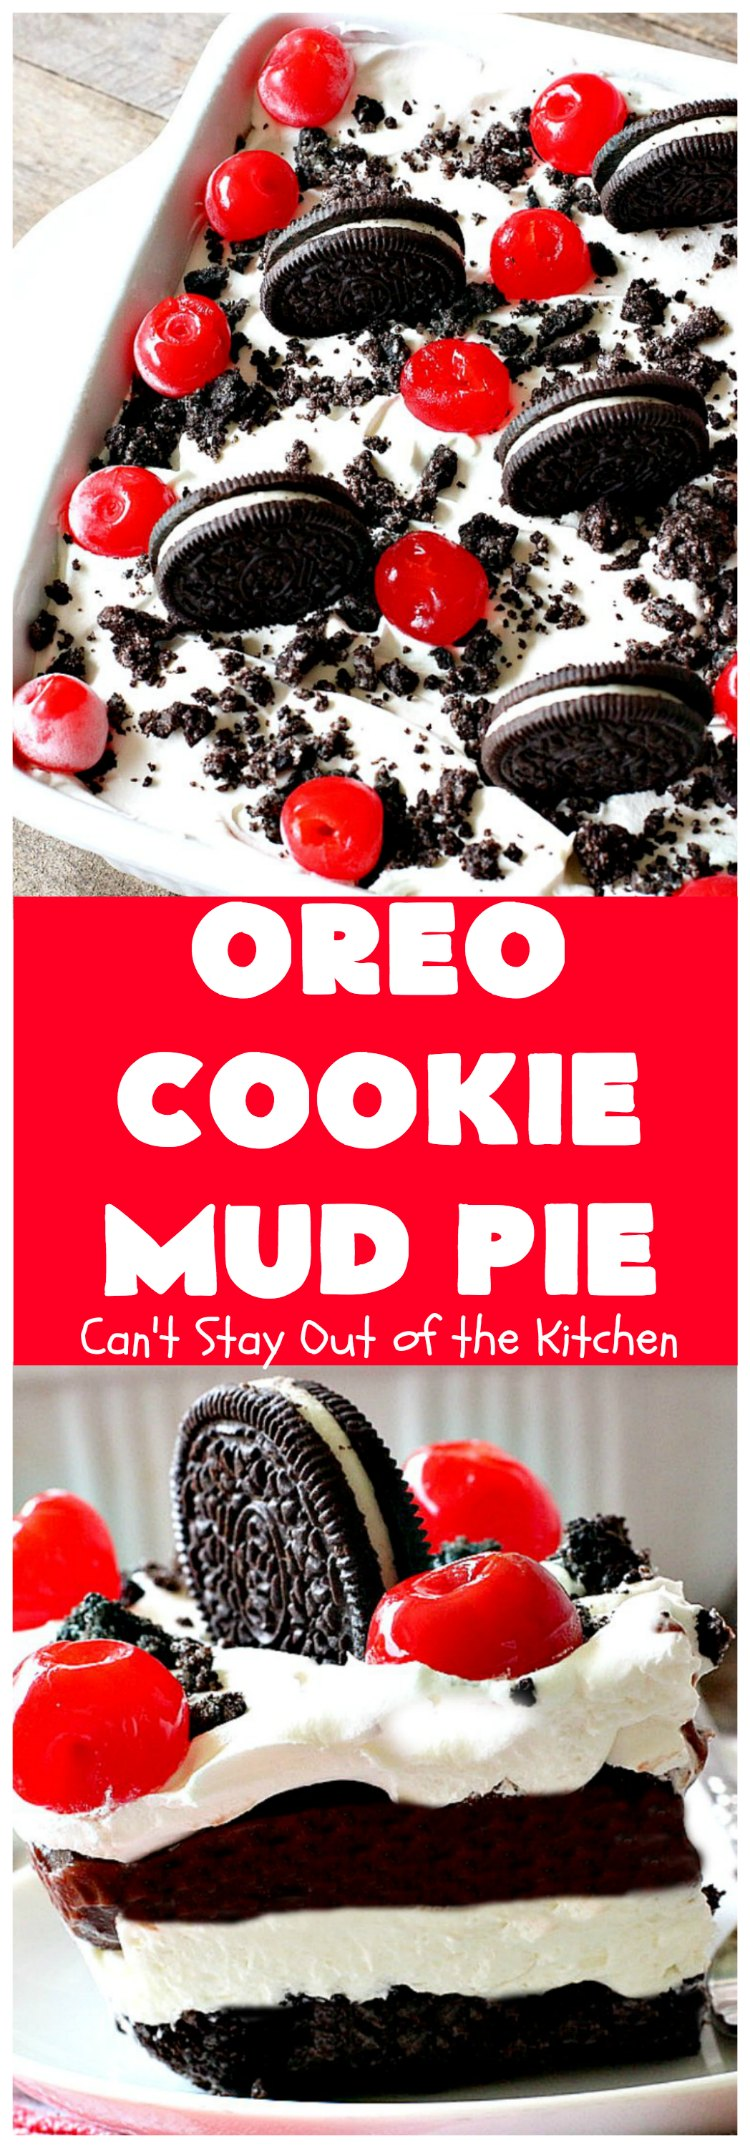 Oreo Cookie Mud Pie | Can't Stay Out of the Kitchen